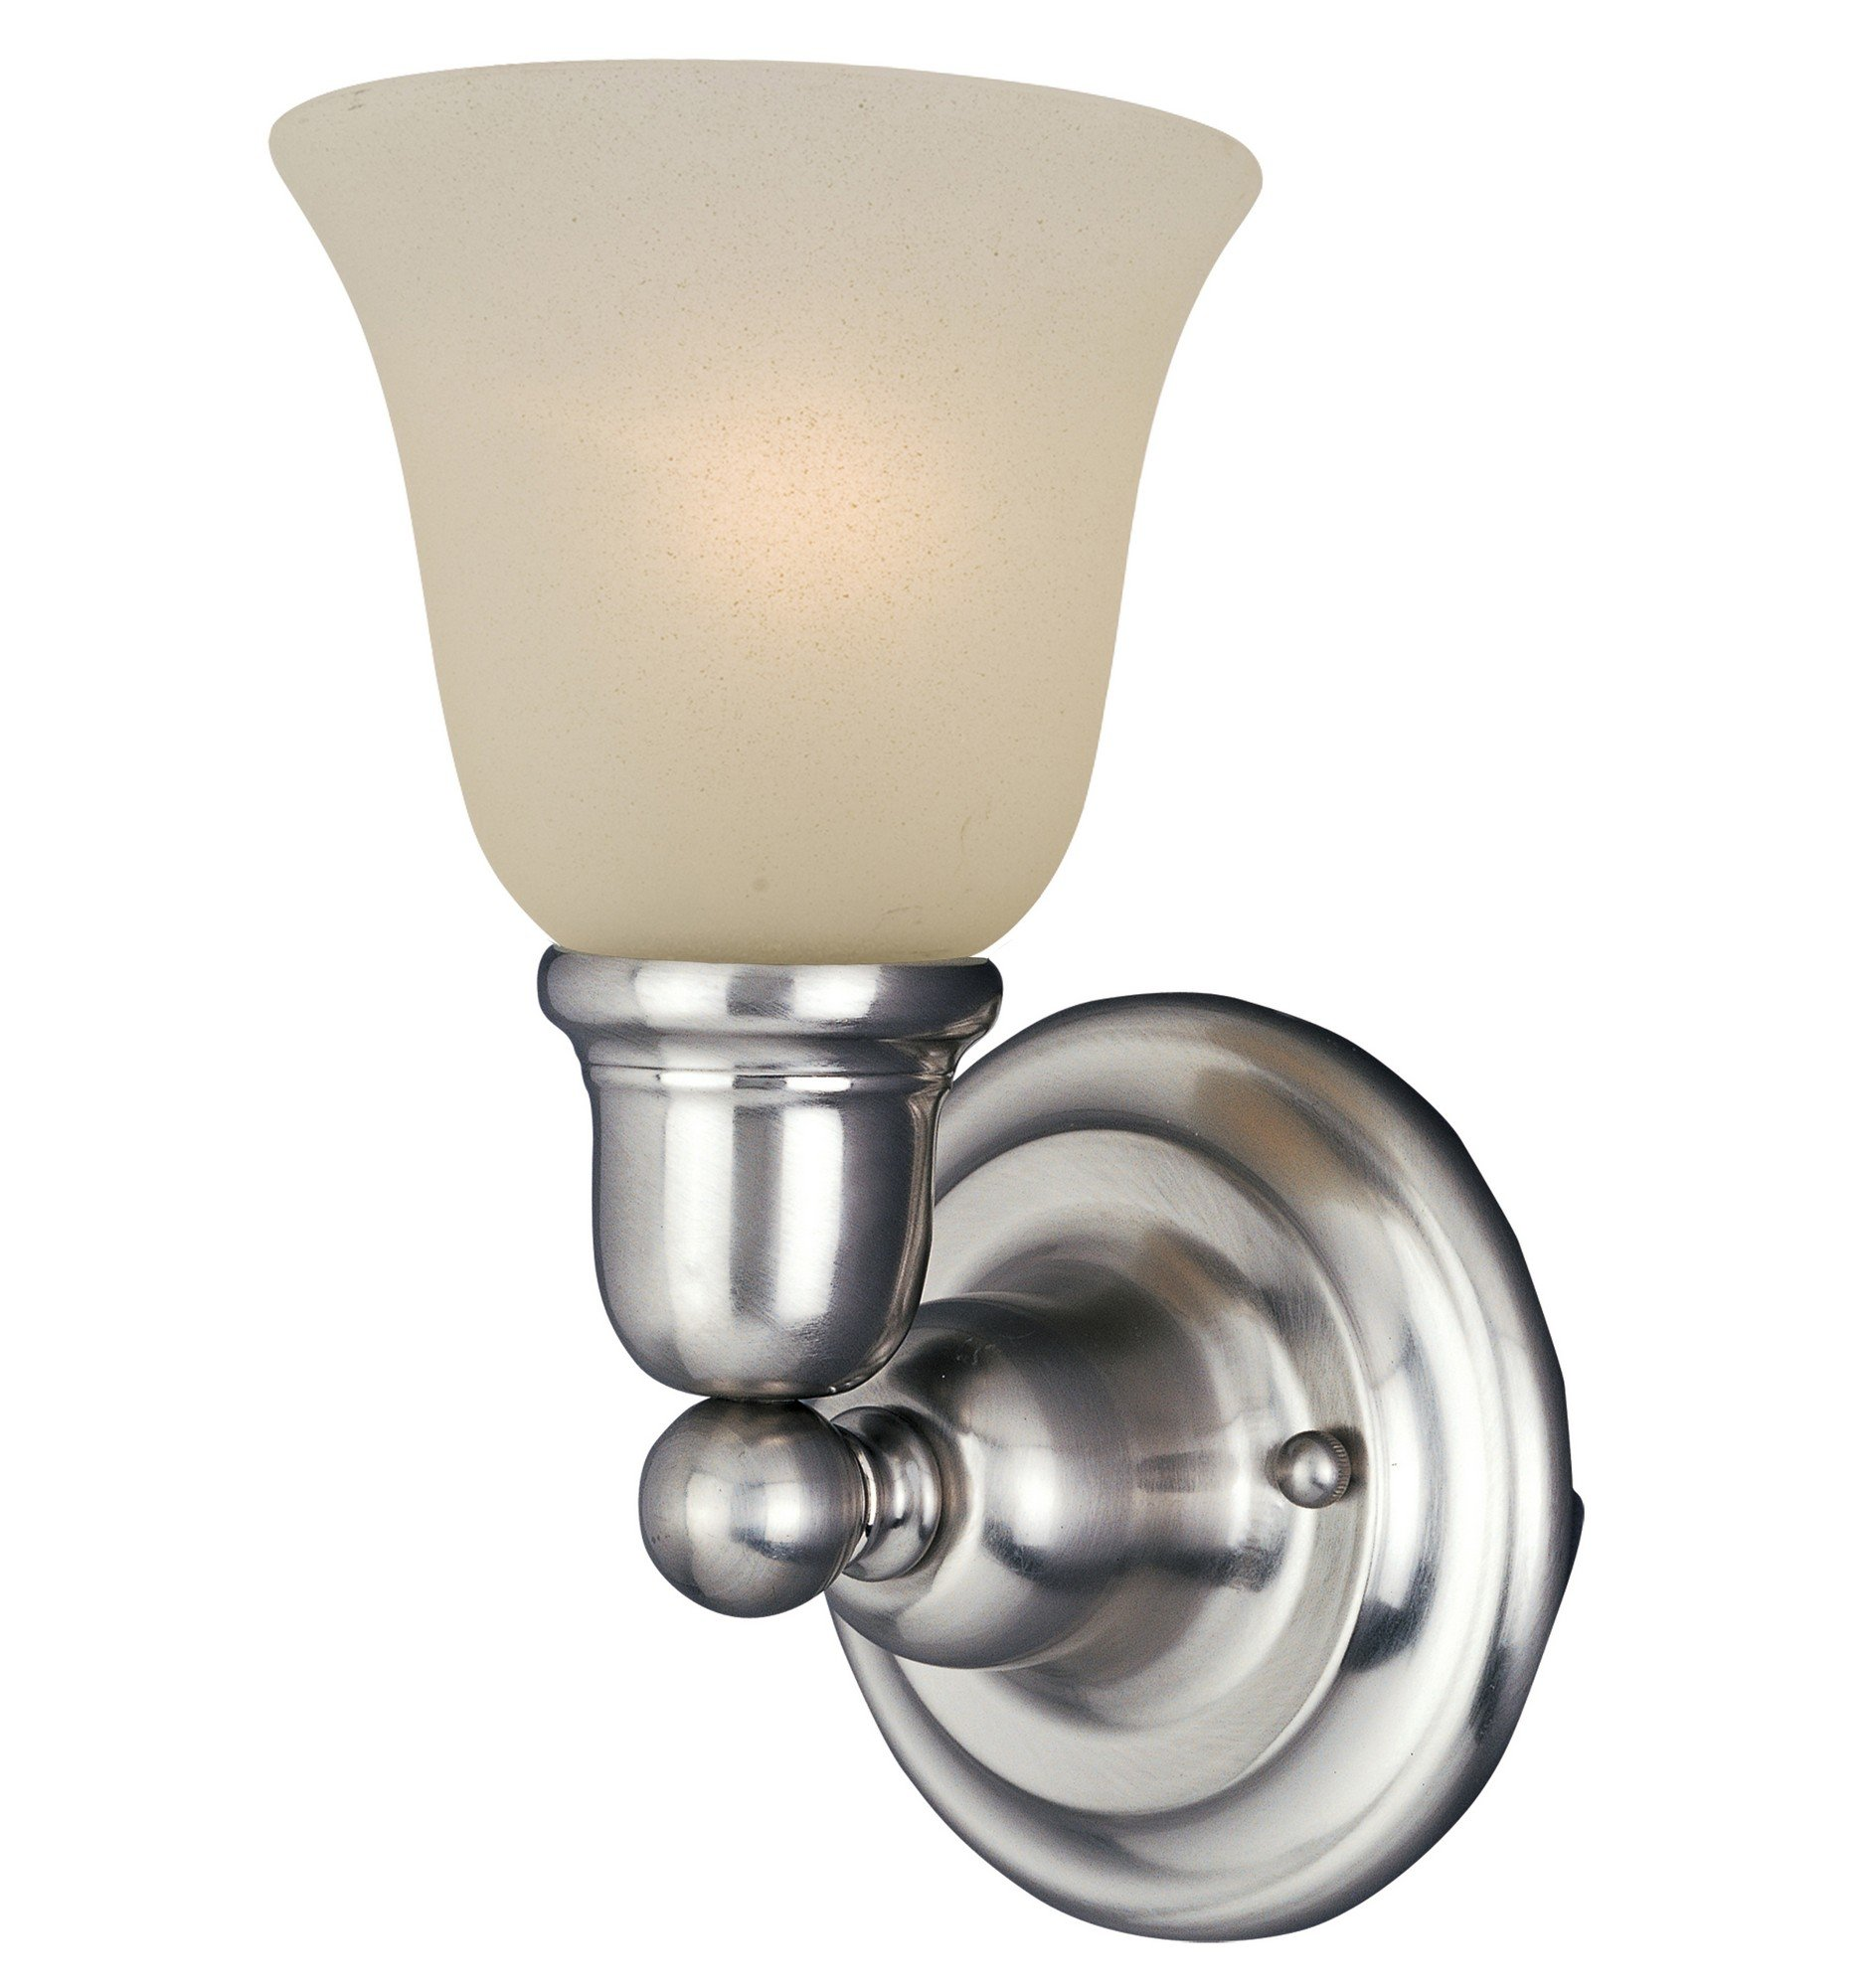 Maxim 11086SVSN Bel Air 1-Light Wall Sconce Bath Vanity, Satin Nickel Finish, Soft Vanilla Glass, MB Incandescent Bulb , 100W Max., Dry Safety Rating, Standard Dimmable, Glass Shade Material, 2300 Rated Lumens